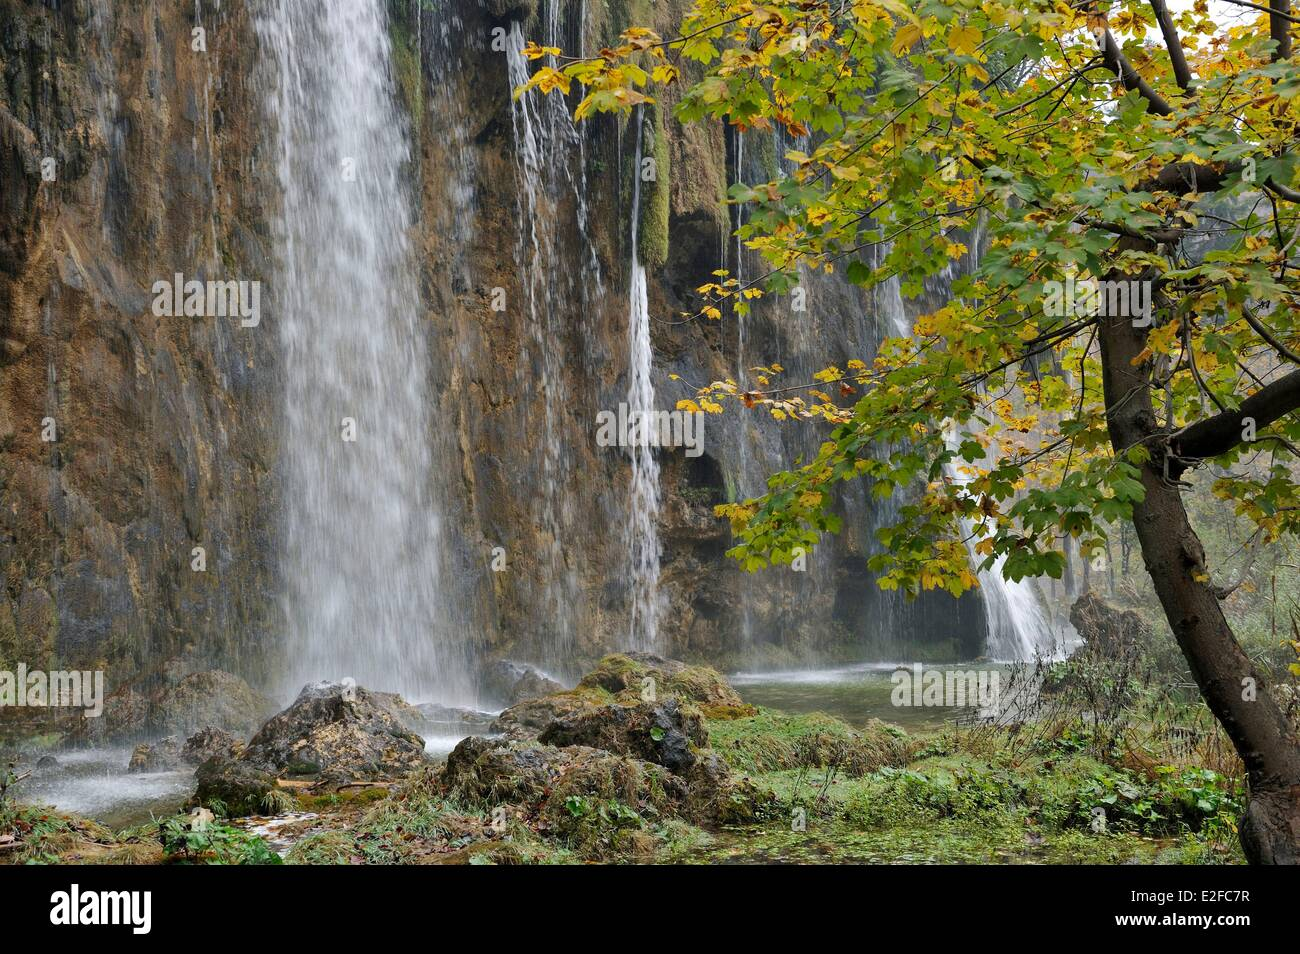 Croatia, Plitvice Lakes National Park listed as World Heritage by UNESCO, upper lakes - Stock Image